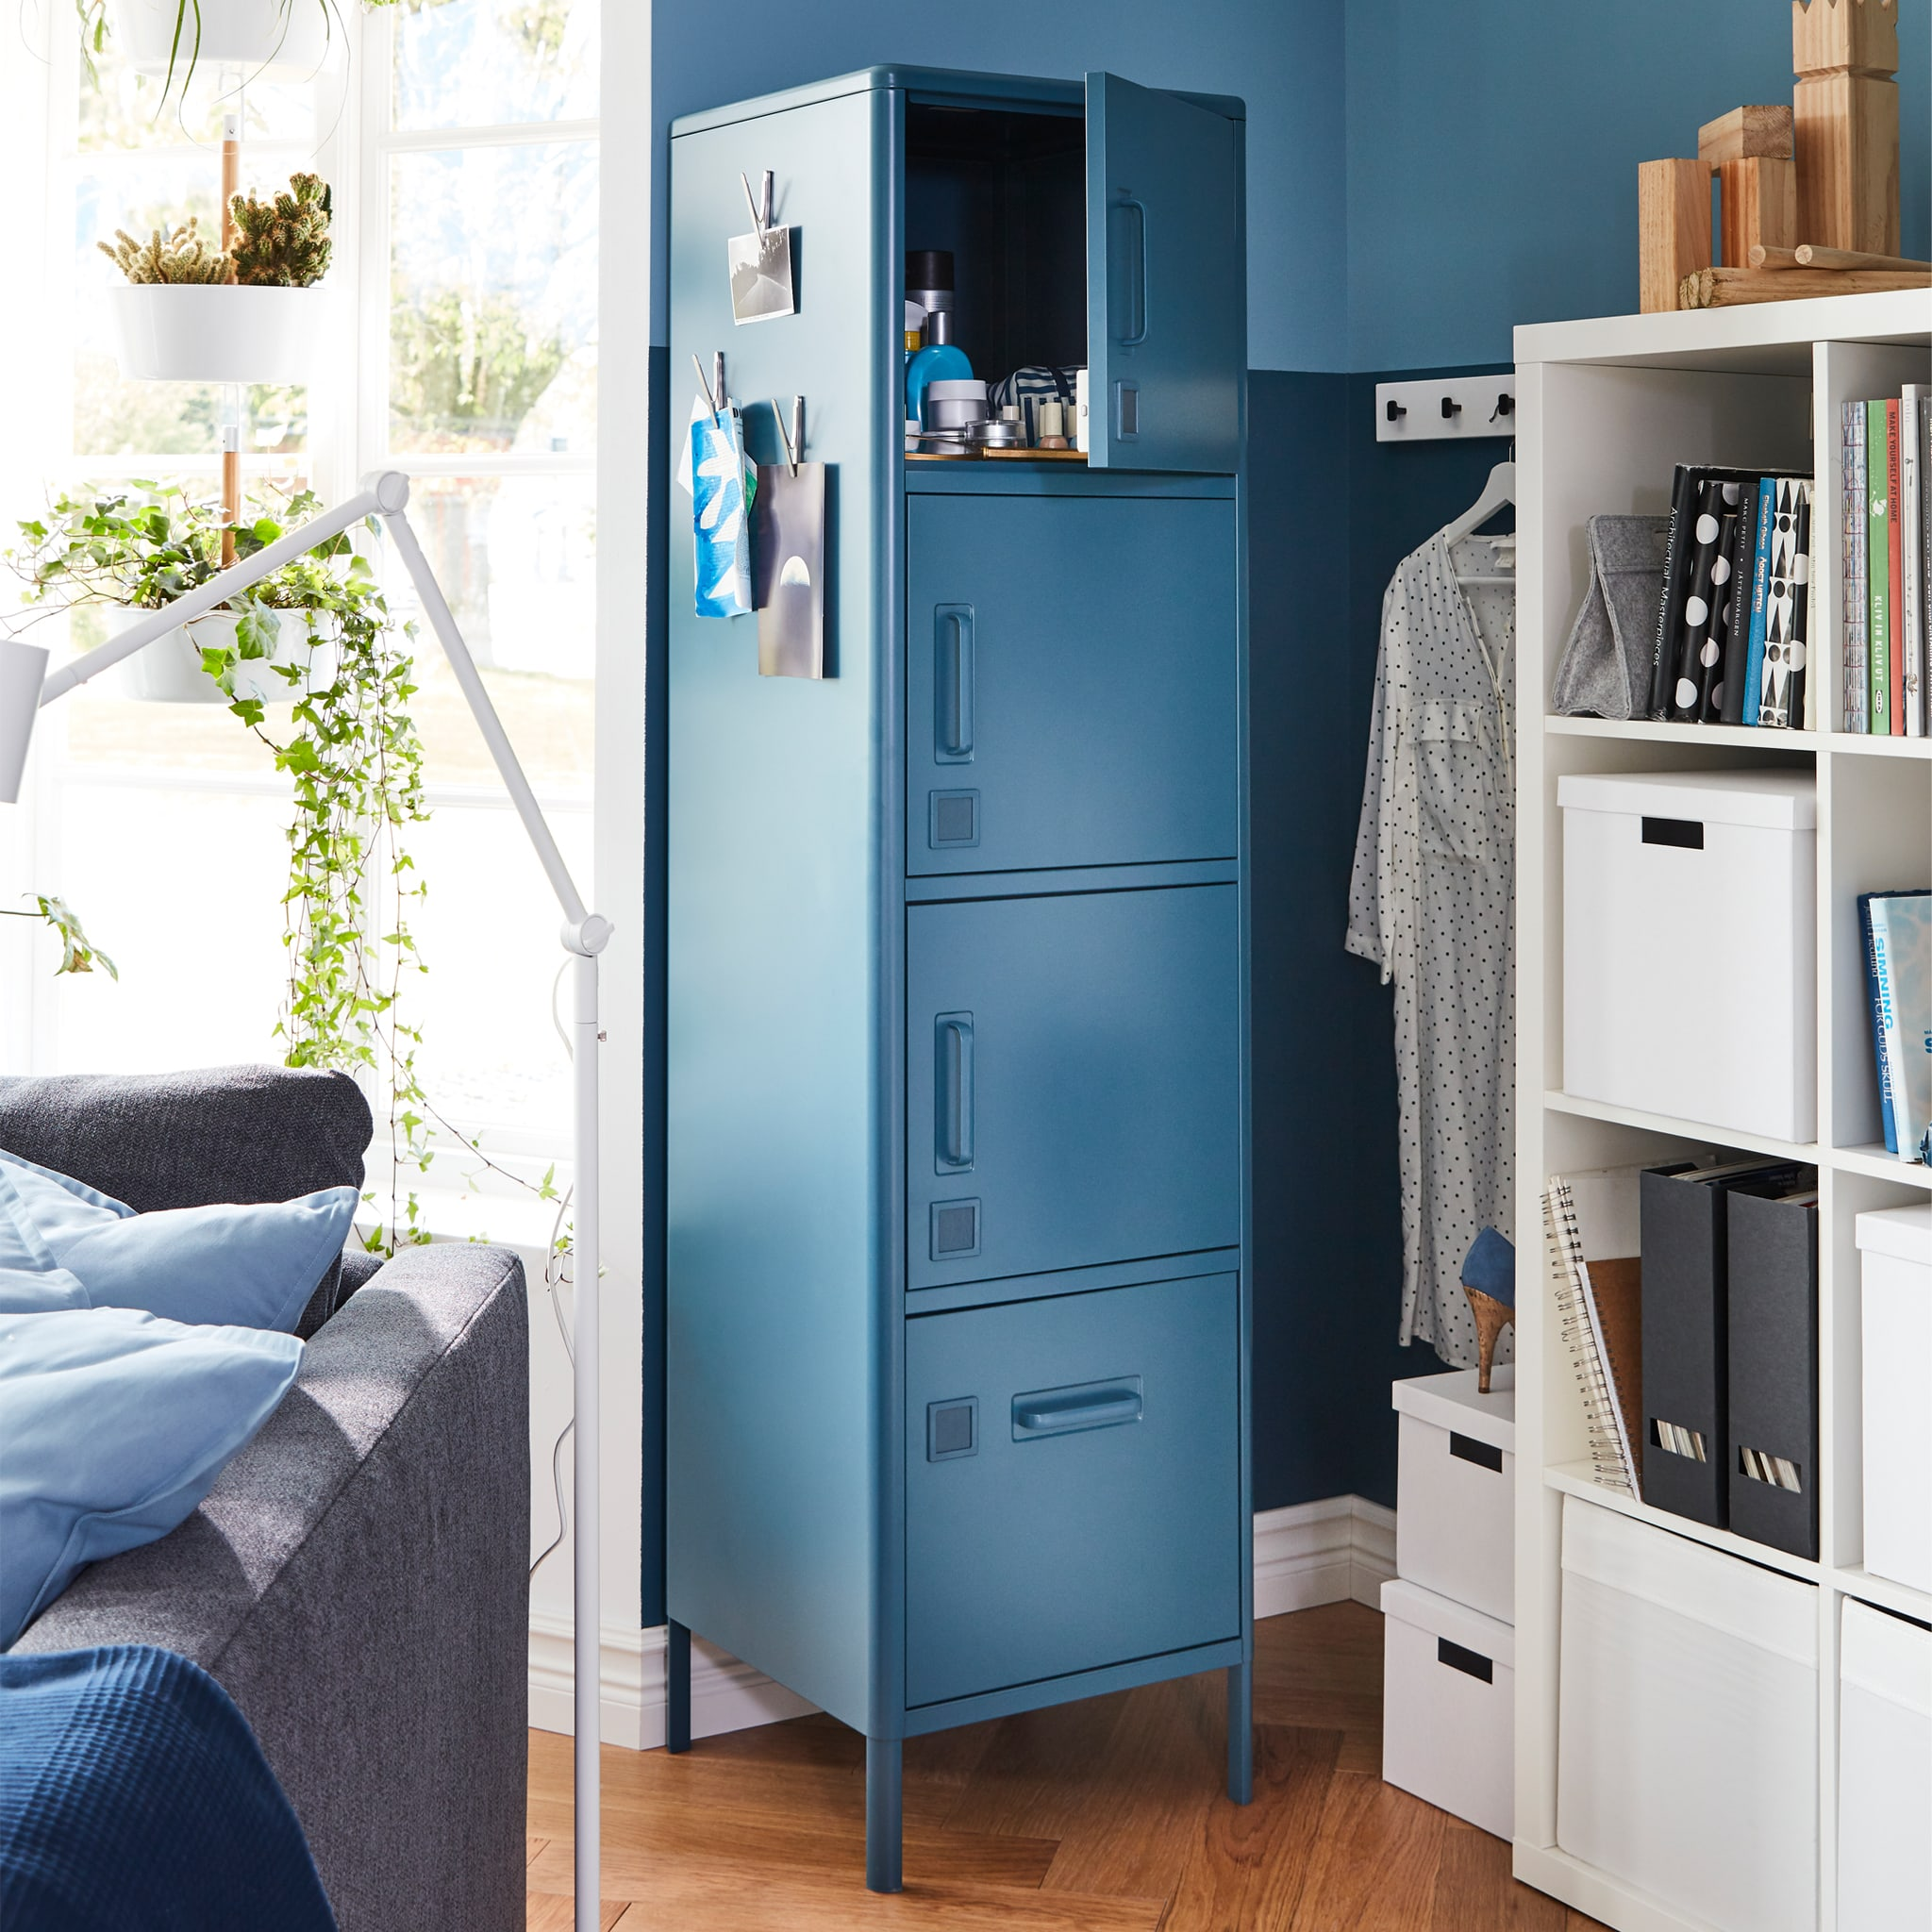 Next to a window is a narrow wall where IDÅSEN high cabinet with four doors fits perfectly since it's narrow too.